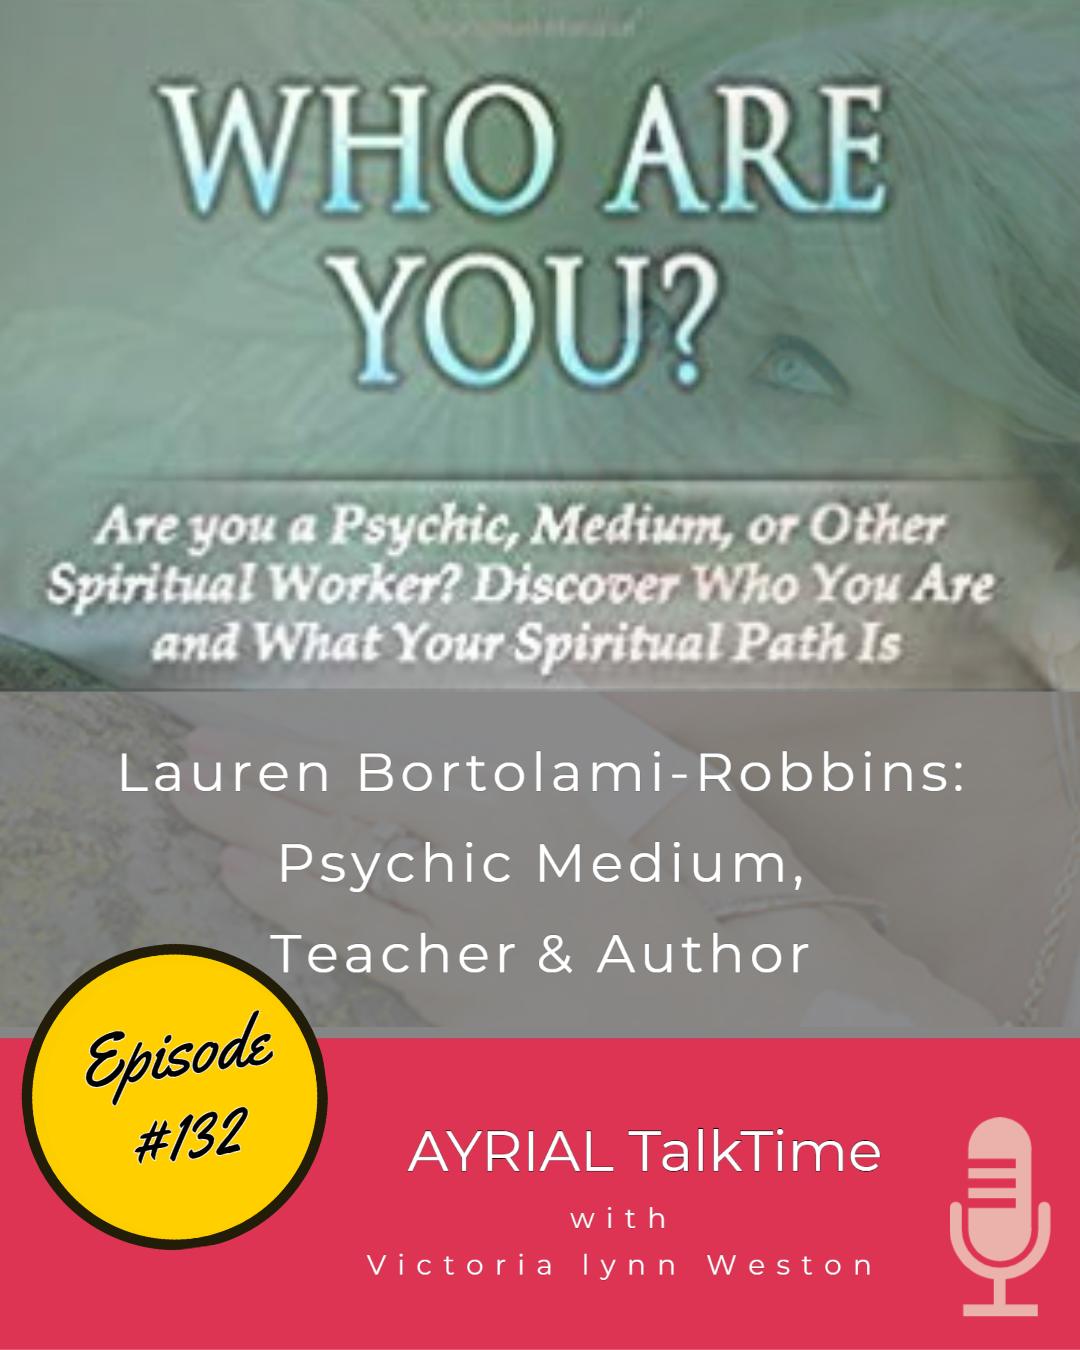 lauren bortolami ayrial talktime february